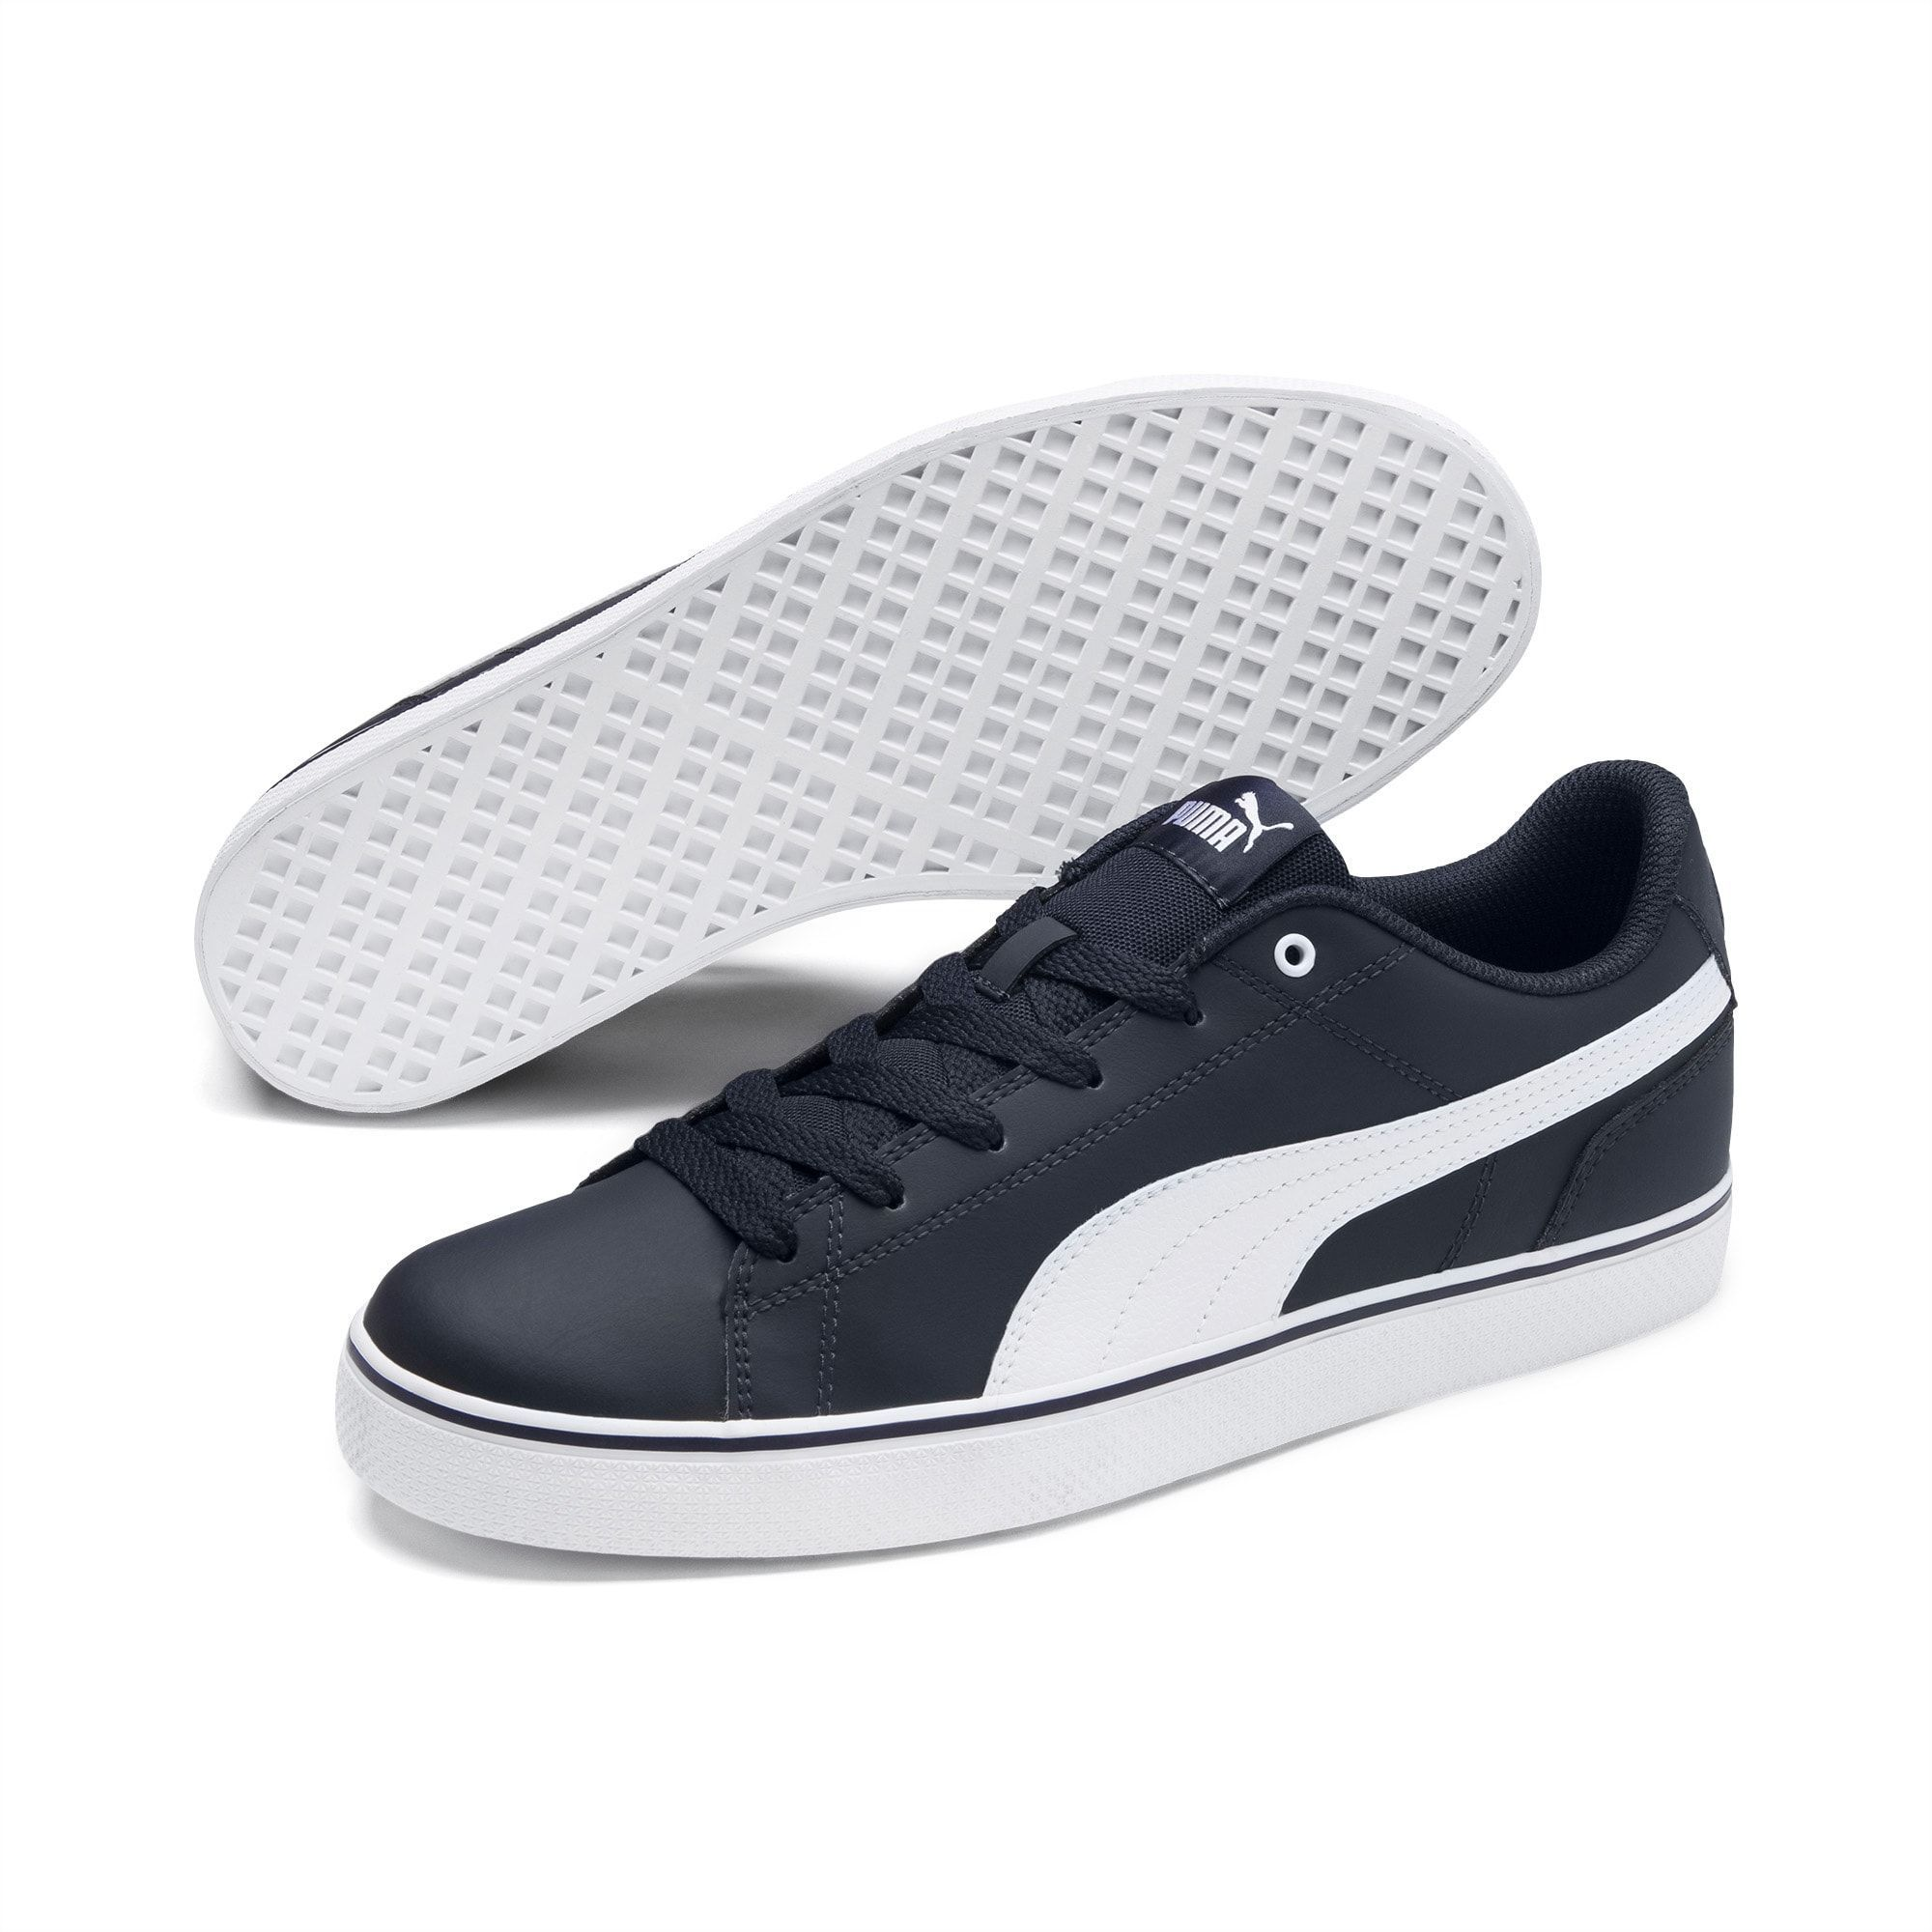 Women S Puma Court Point Vulc V2 Trainers Peacoat White Size 10 5 Shoes Fusing A Low Rise Tennis Inspired Silhouette With Clean Vulc In 2020 Sneaker Schuhe Puma